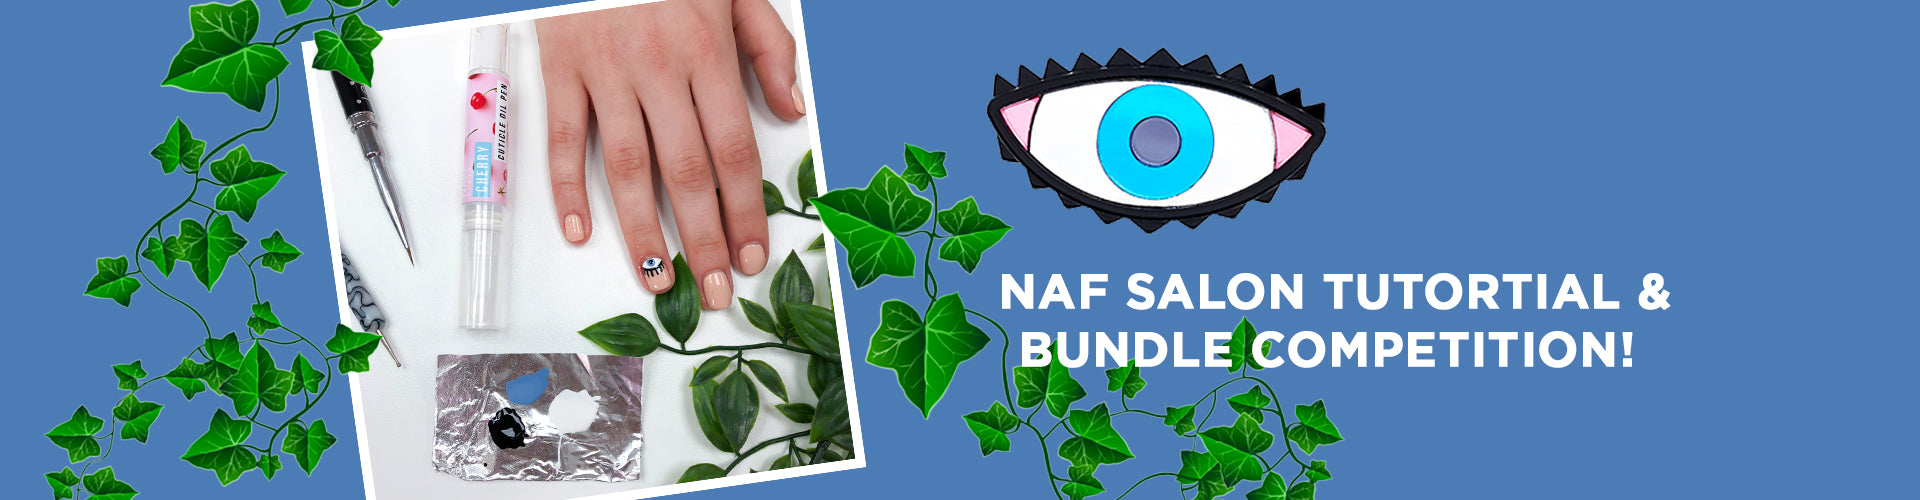 Nail It With NAF! Salon